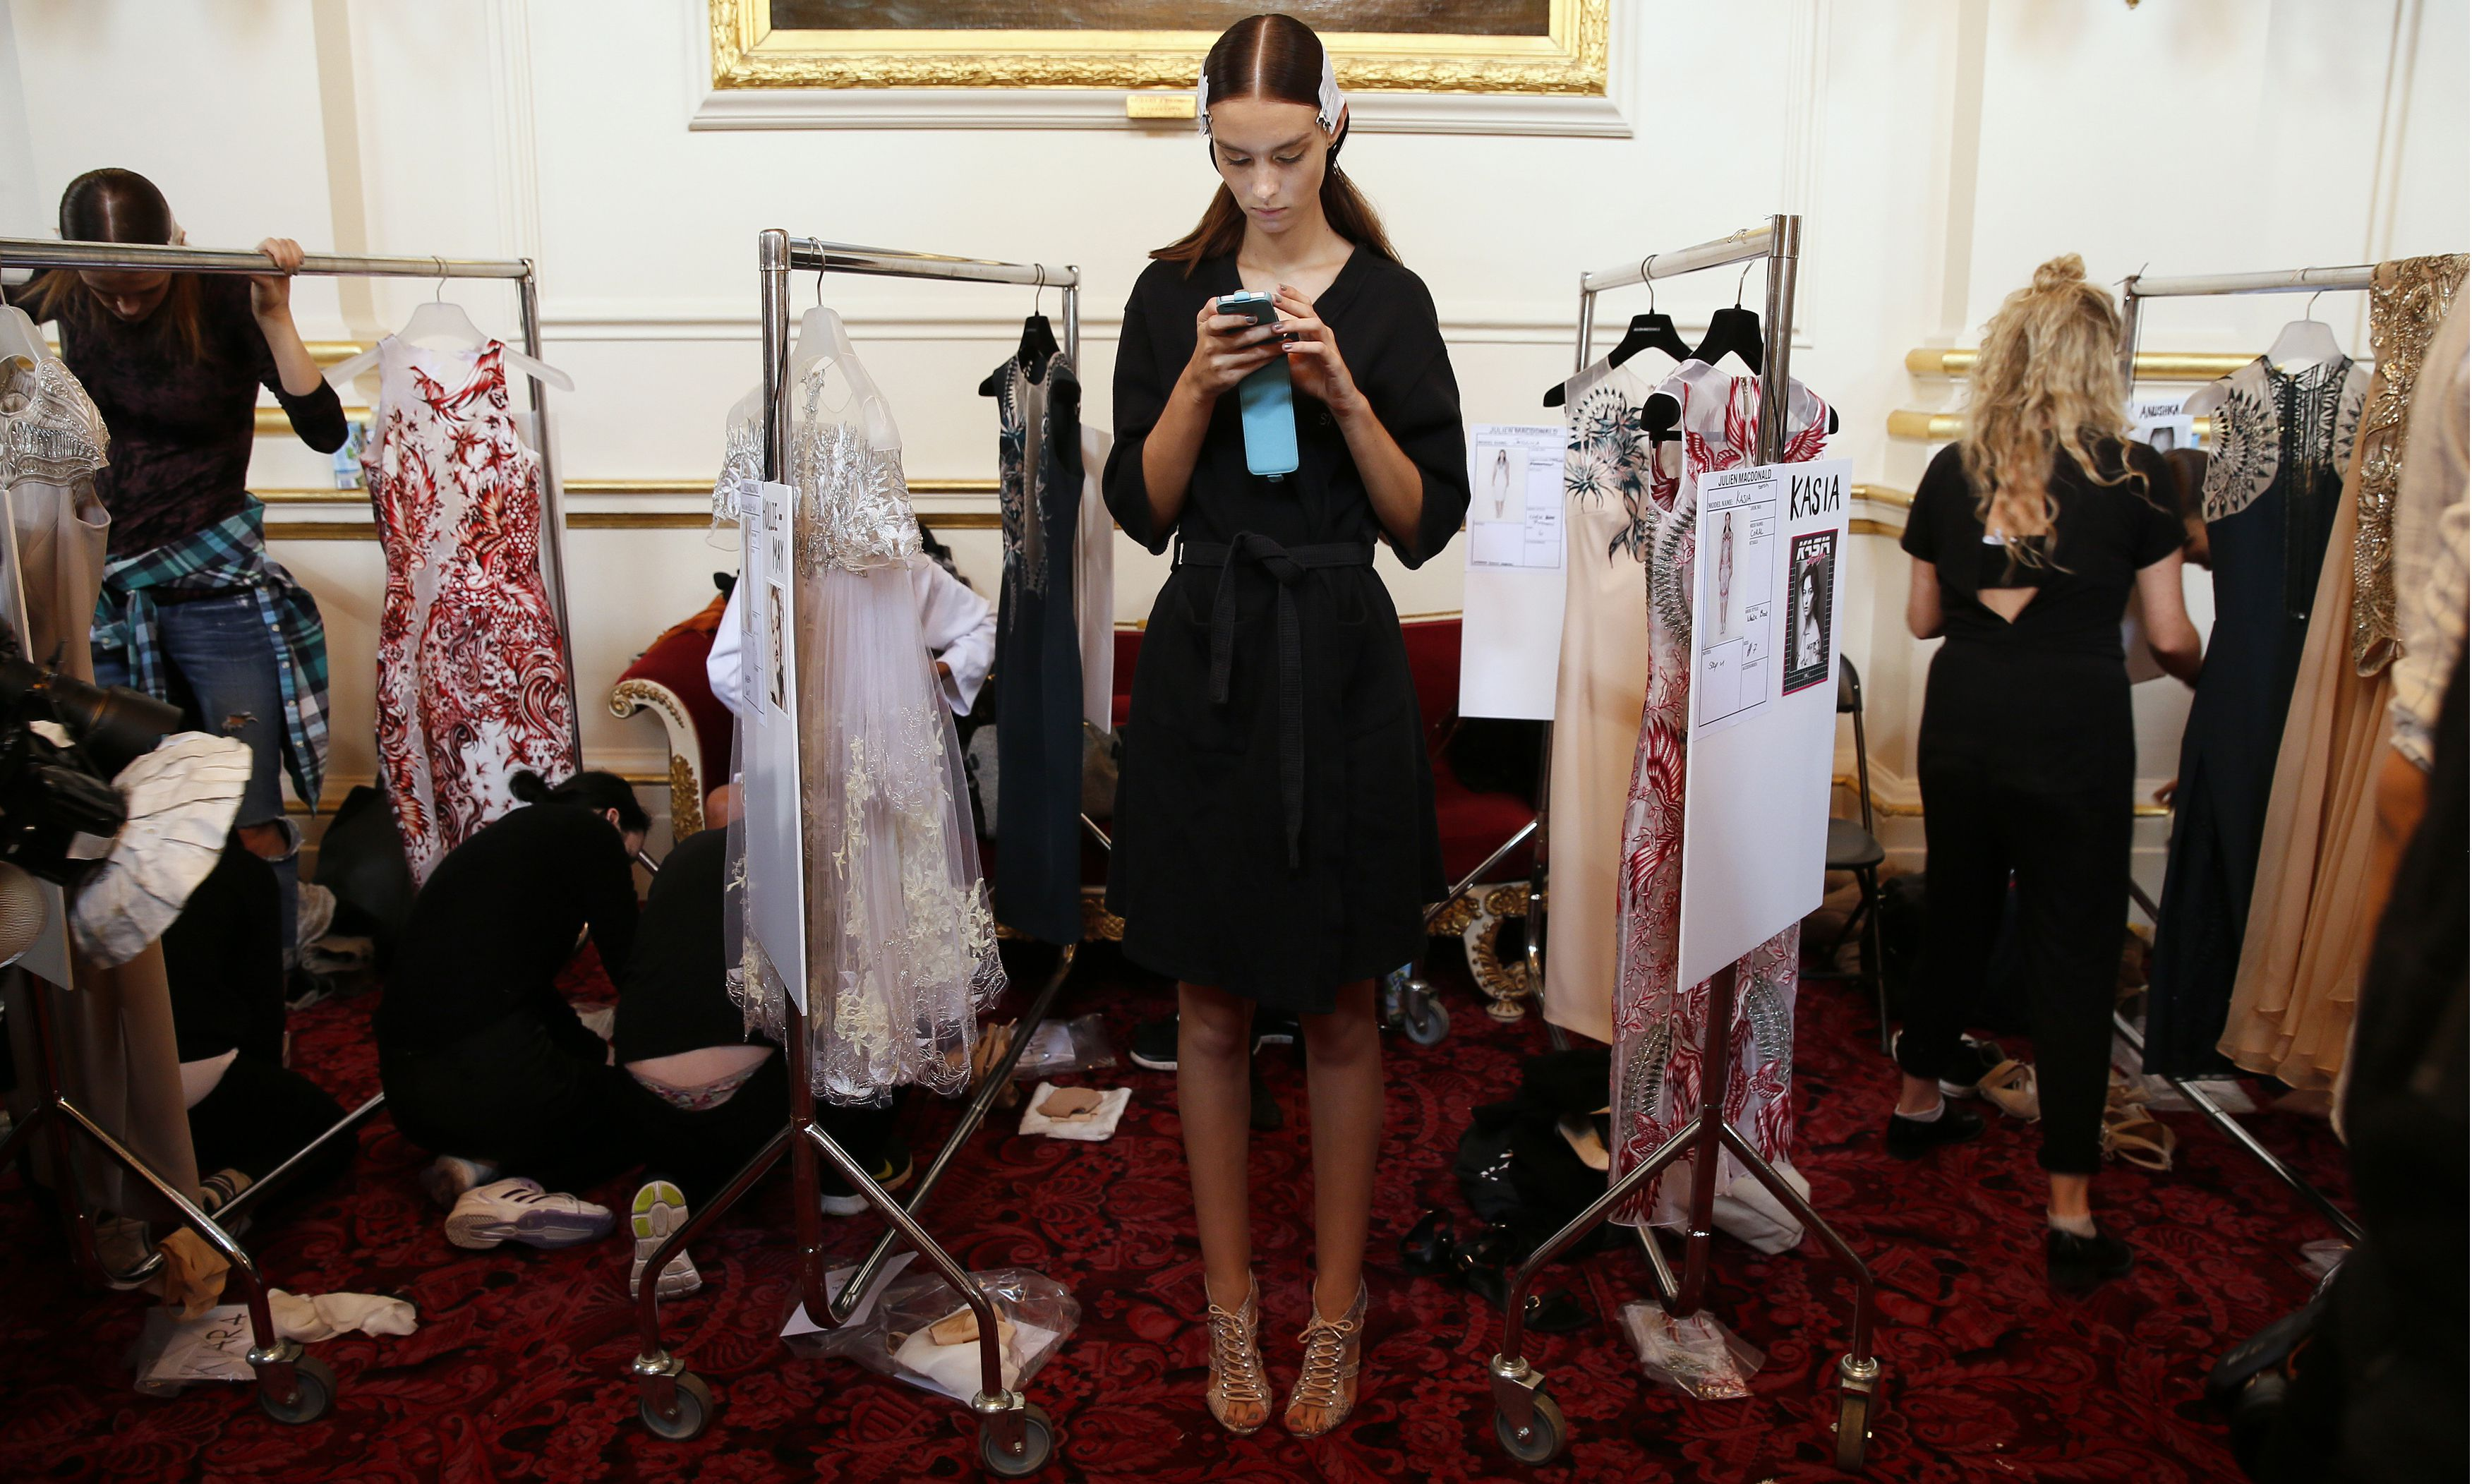 woman shopping, iphone, model, backstage